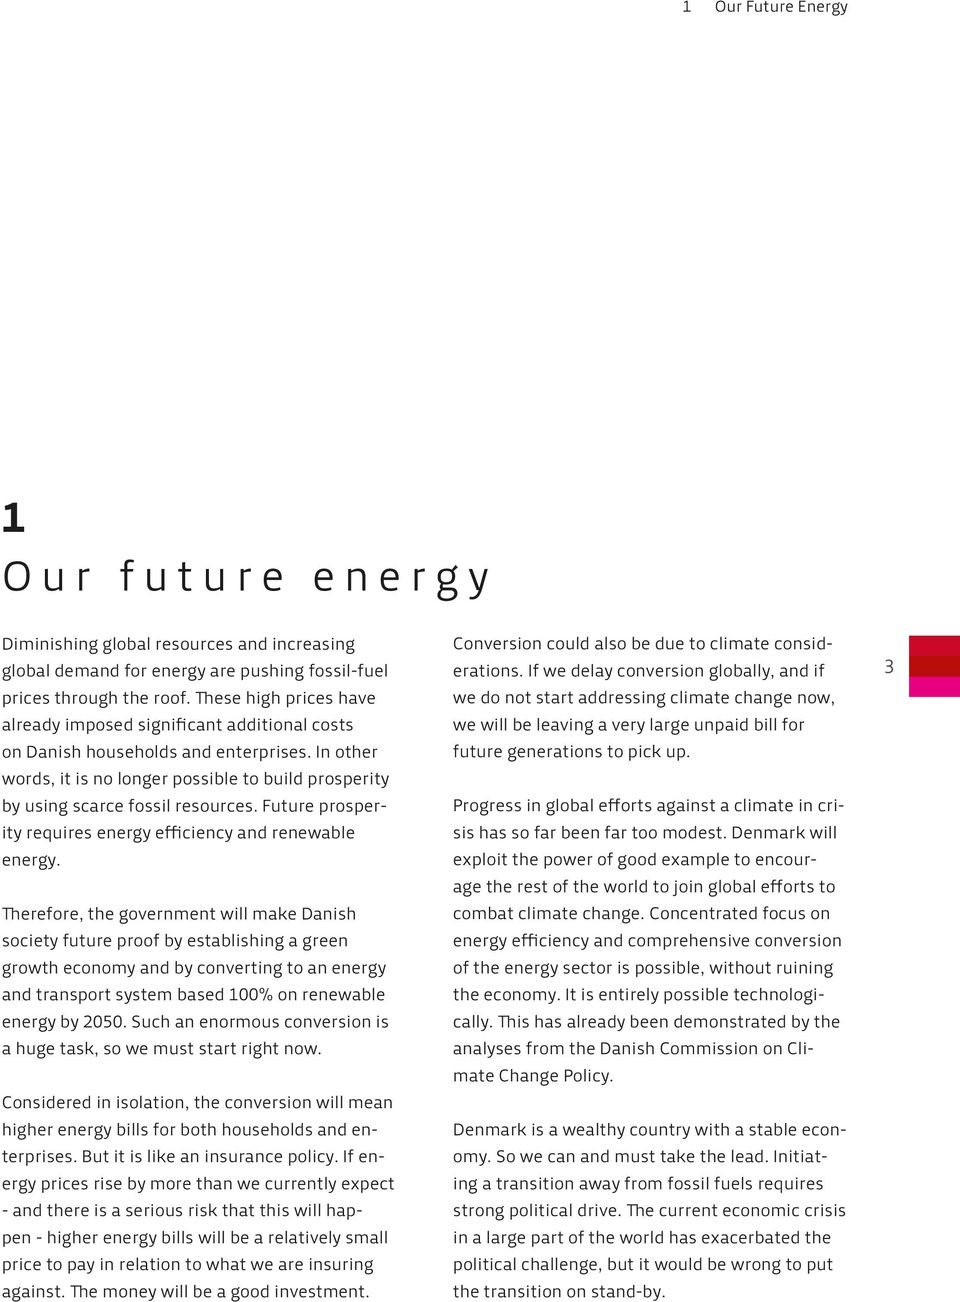 Future prosperity requires energy efficiency and renewable energy.